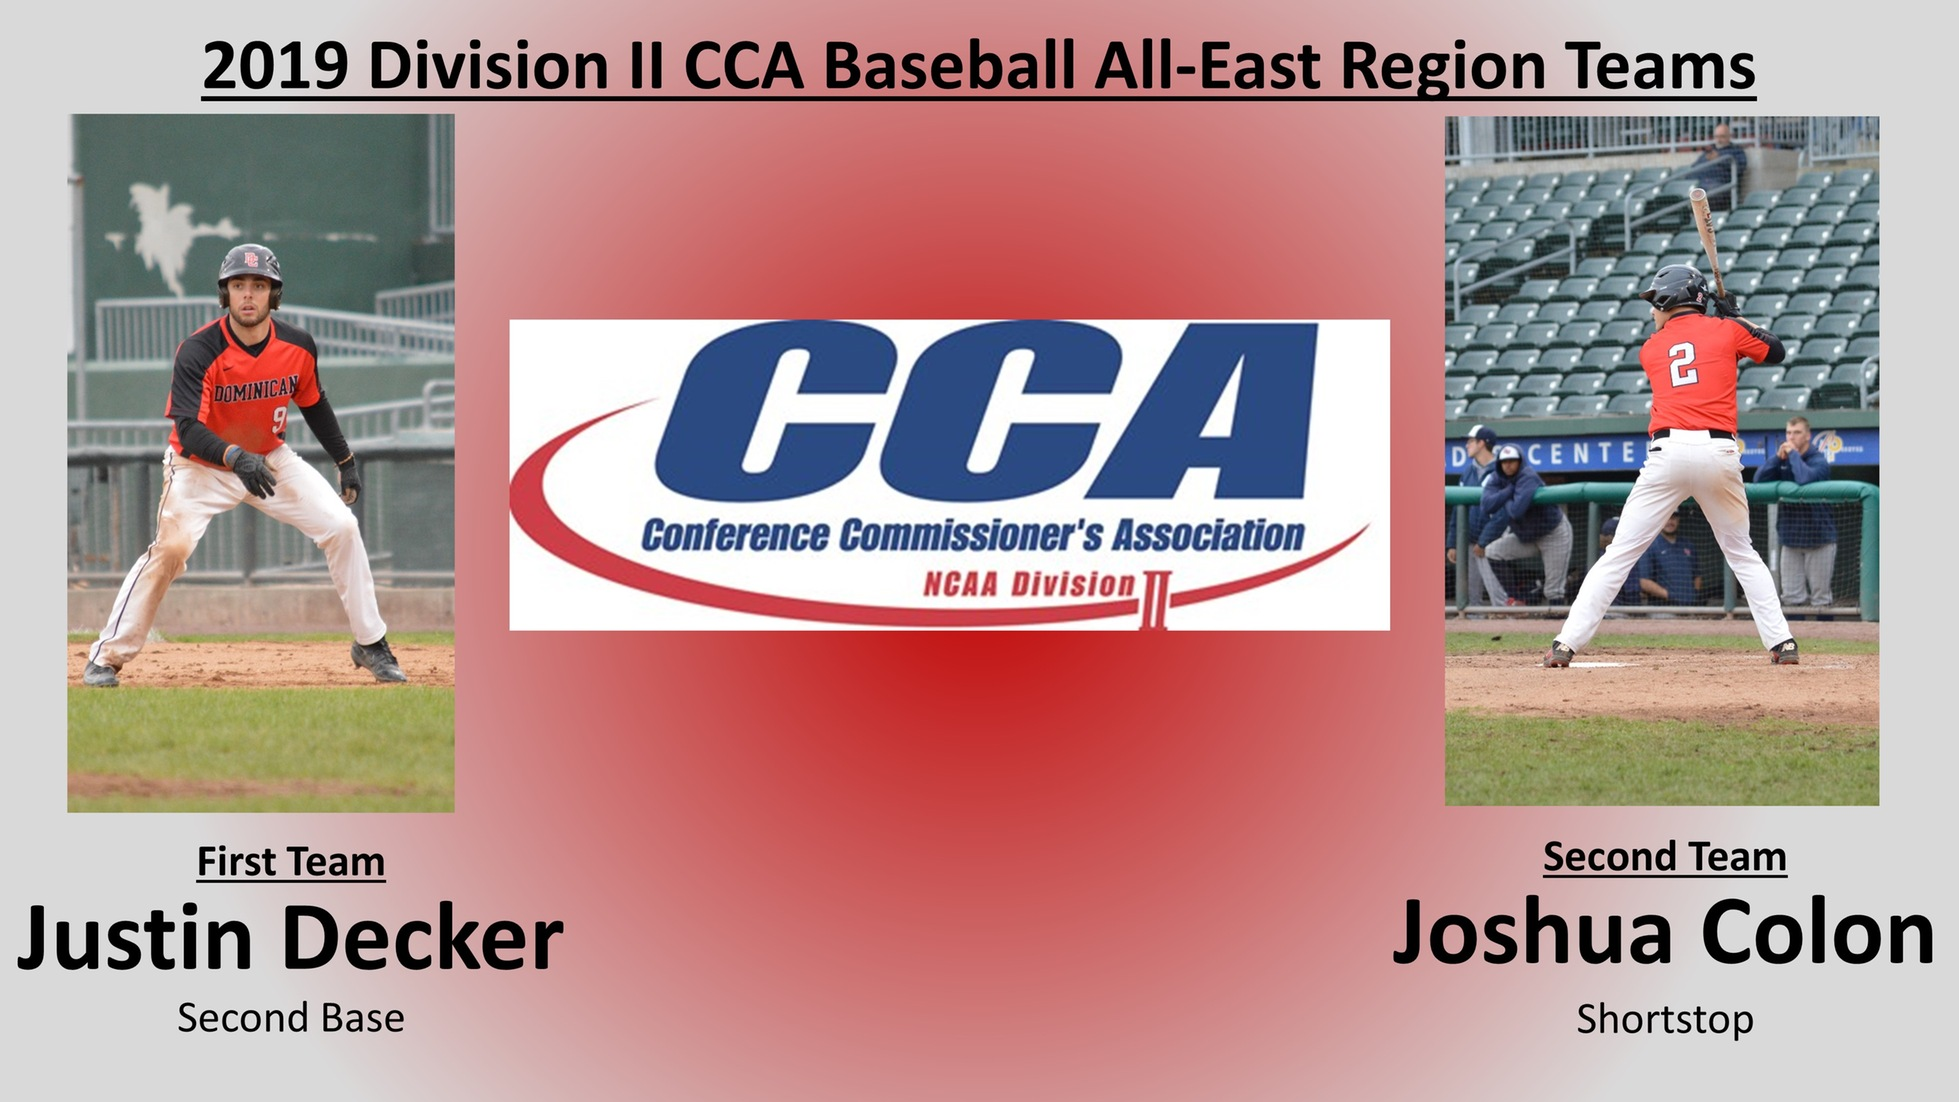 DECKER AND COLON NAMED TO D2CCA BASEBALL ALL-EAST REGION TEAMS